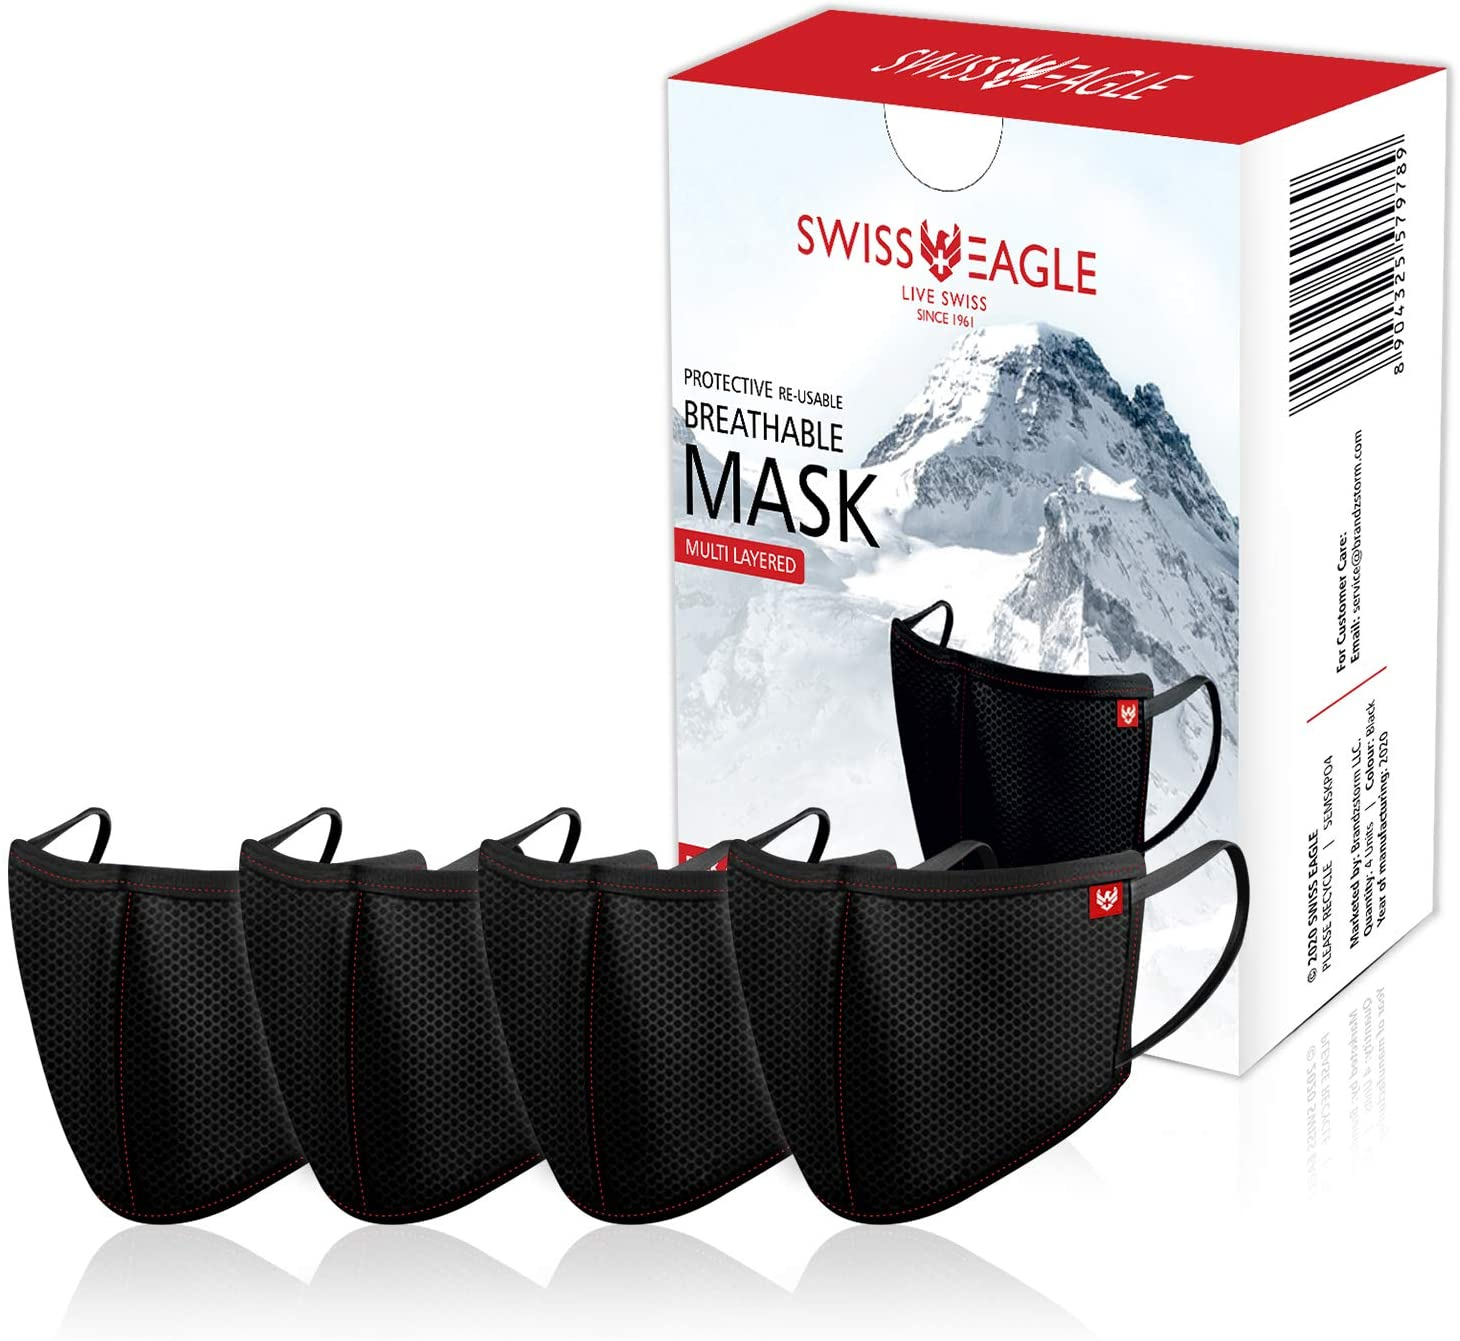 Swiss Eagle Mesh Pack of 4 Black Face Mask Reusable 6 Layer Anti-dust Anti-Pollution